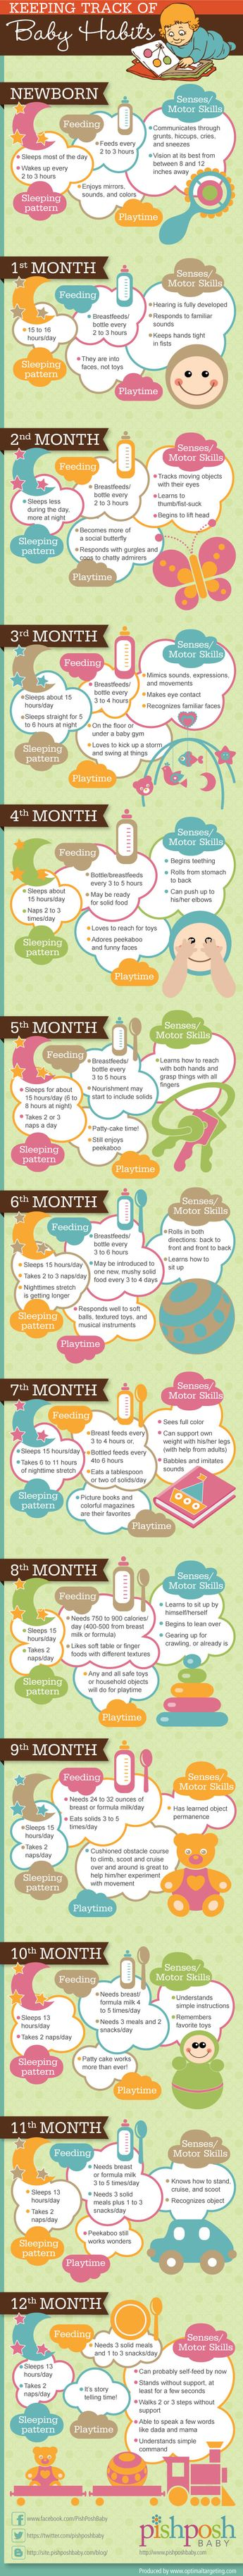 Keeping Track of Baby Habits [Infographic]